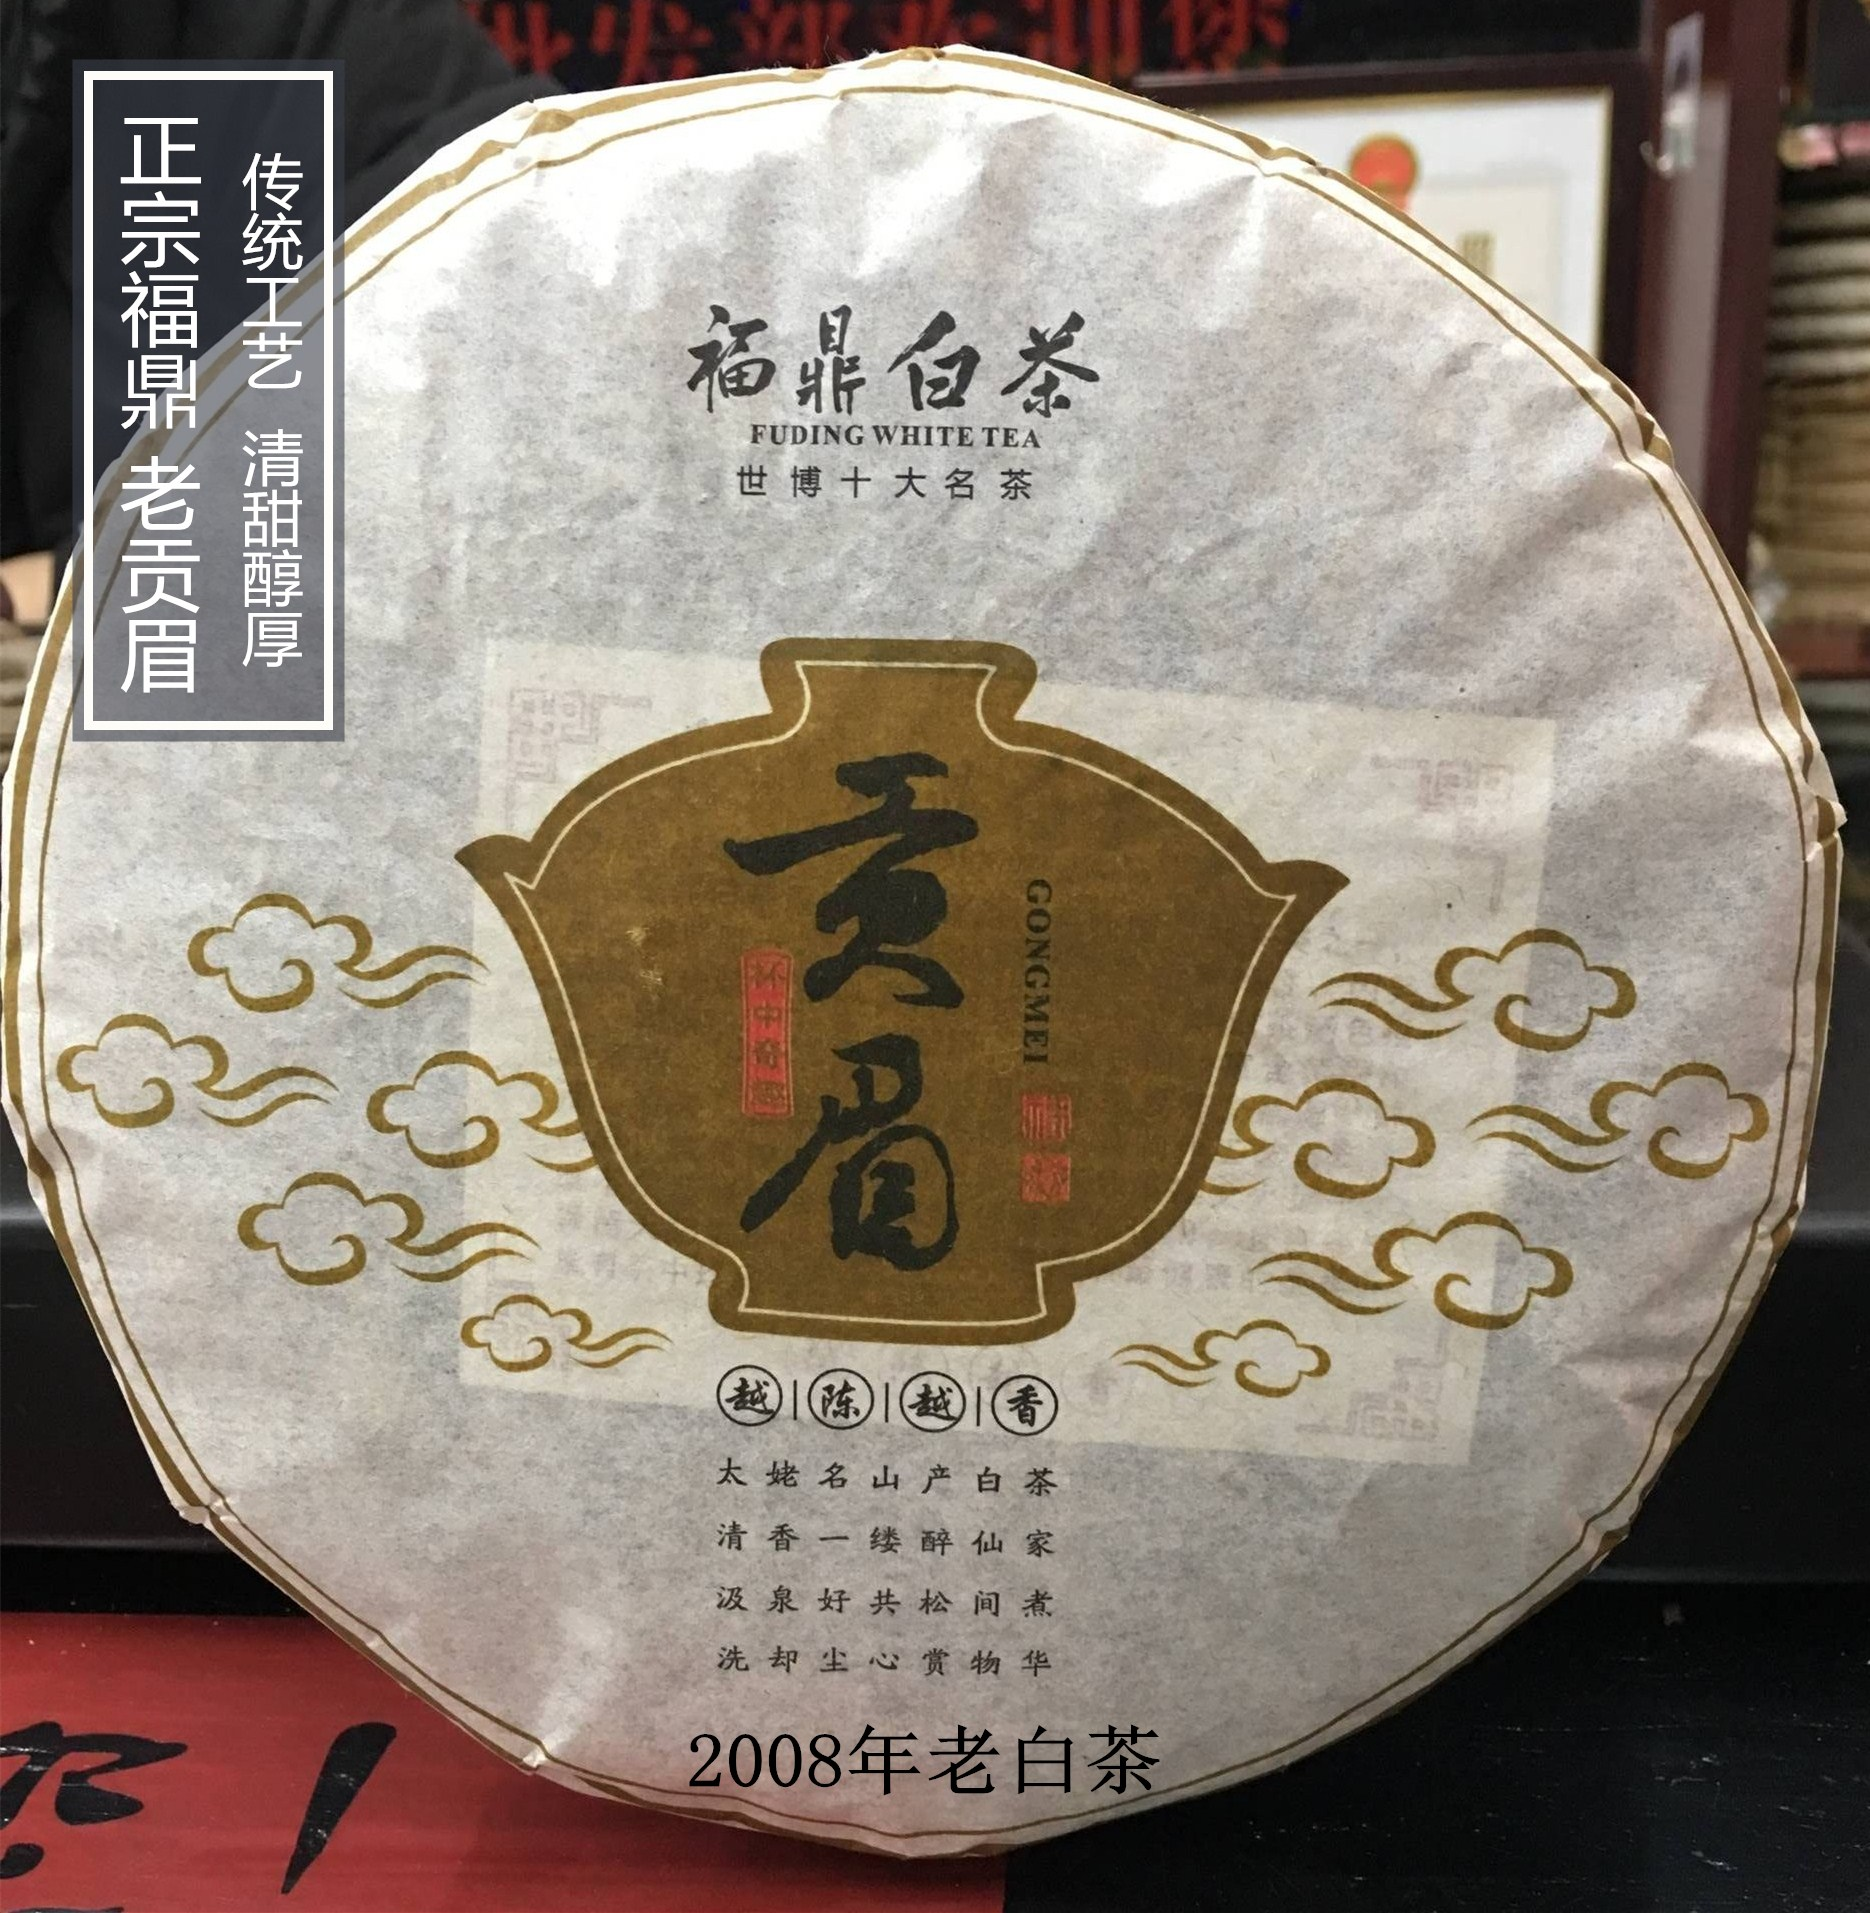 Taimu Mountain Fuding White Tea 2008 Old White Tea Cake Shoumei Gongmei Fujian New Spring Tea Box